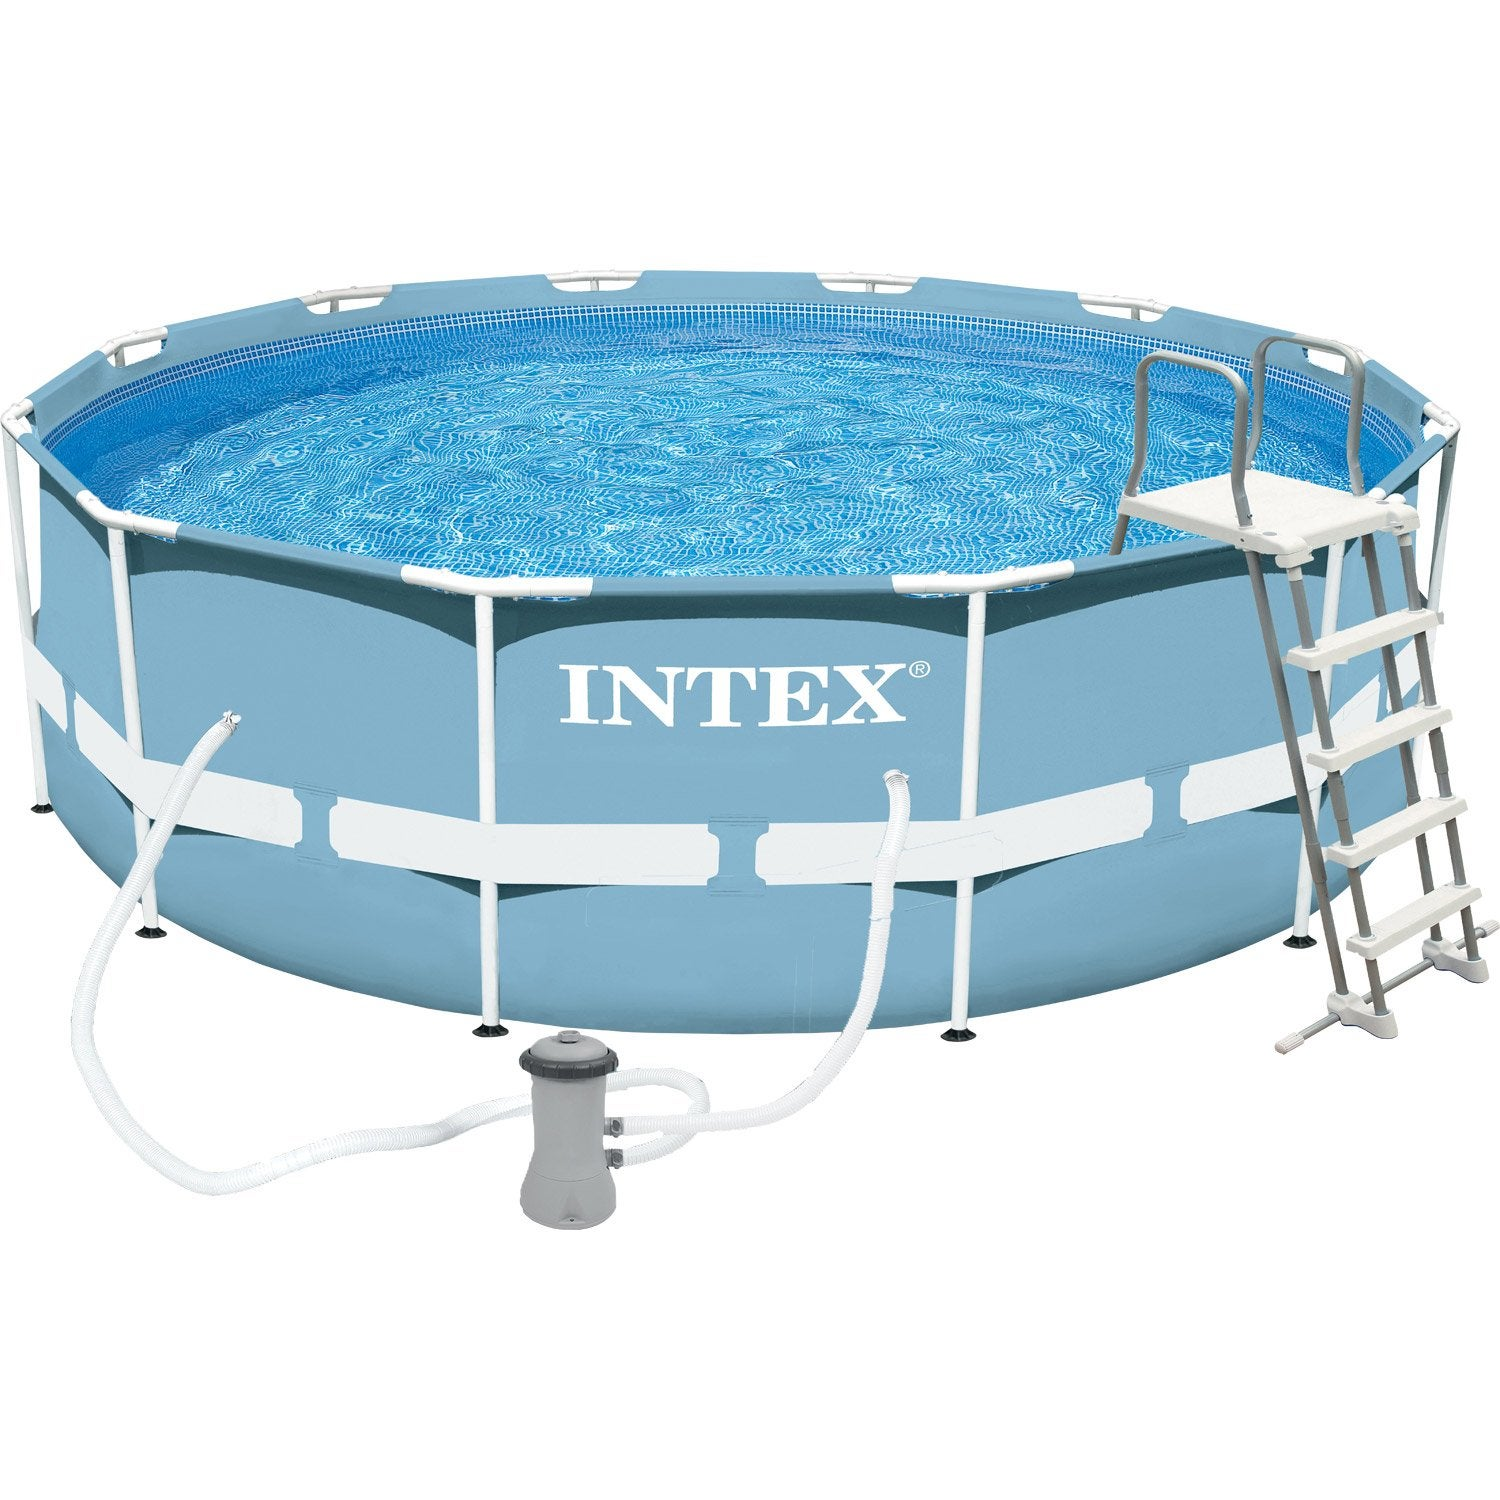 Piscine hors sol autoportante tubulaire prism frame intex for Prix piscine 6 x 3